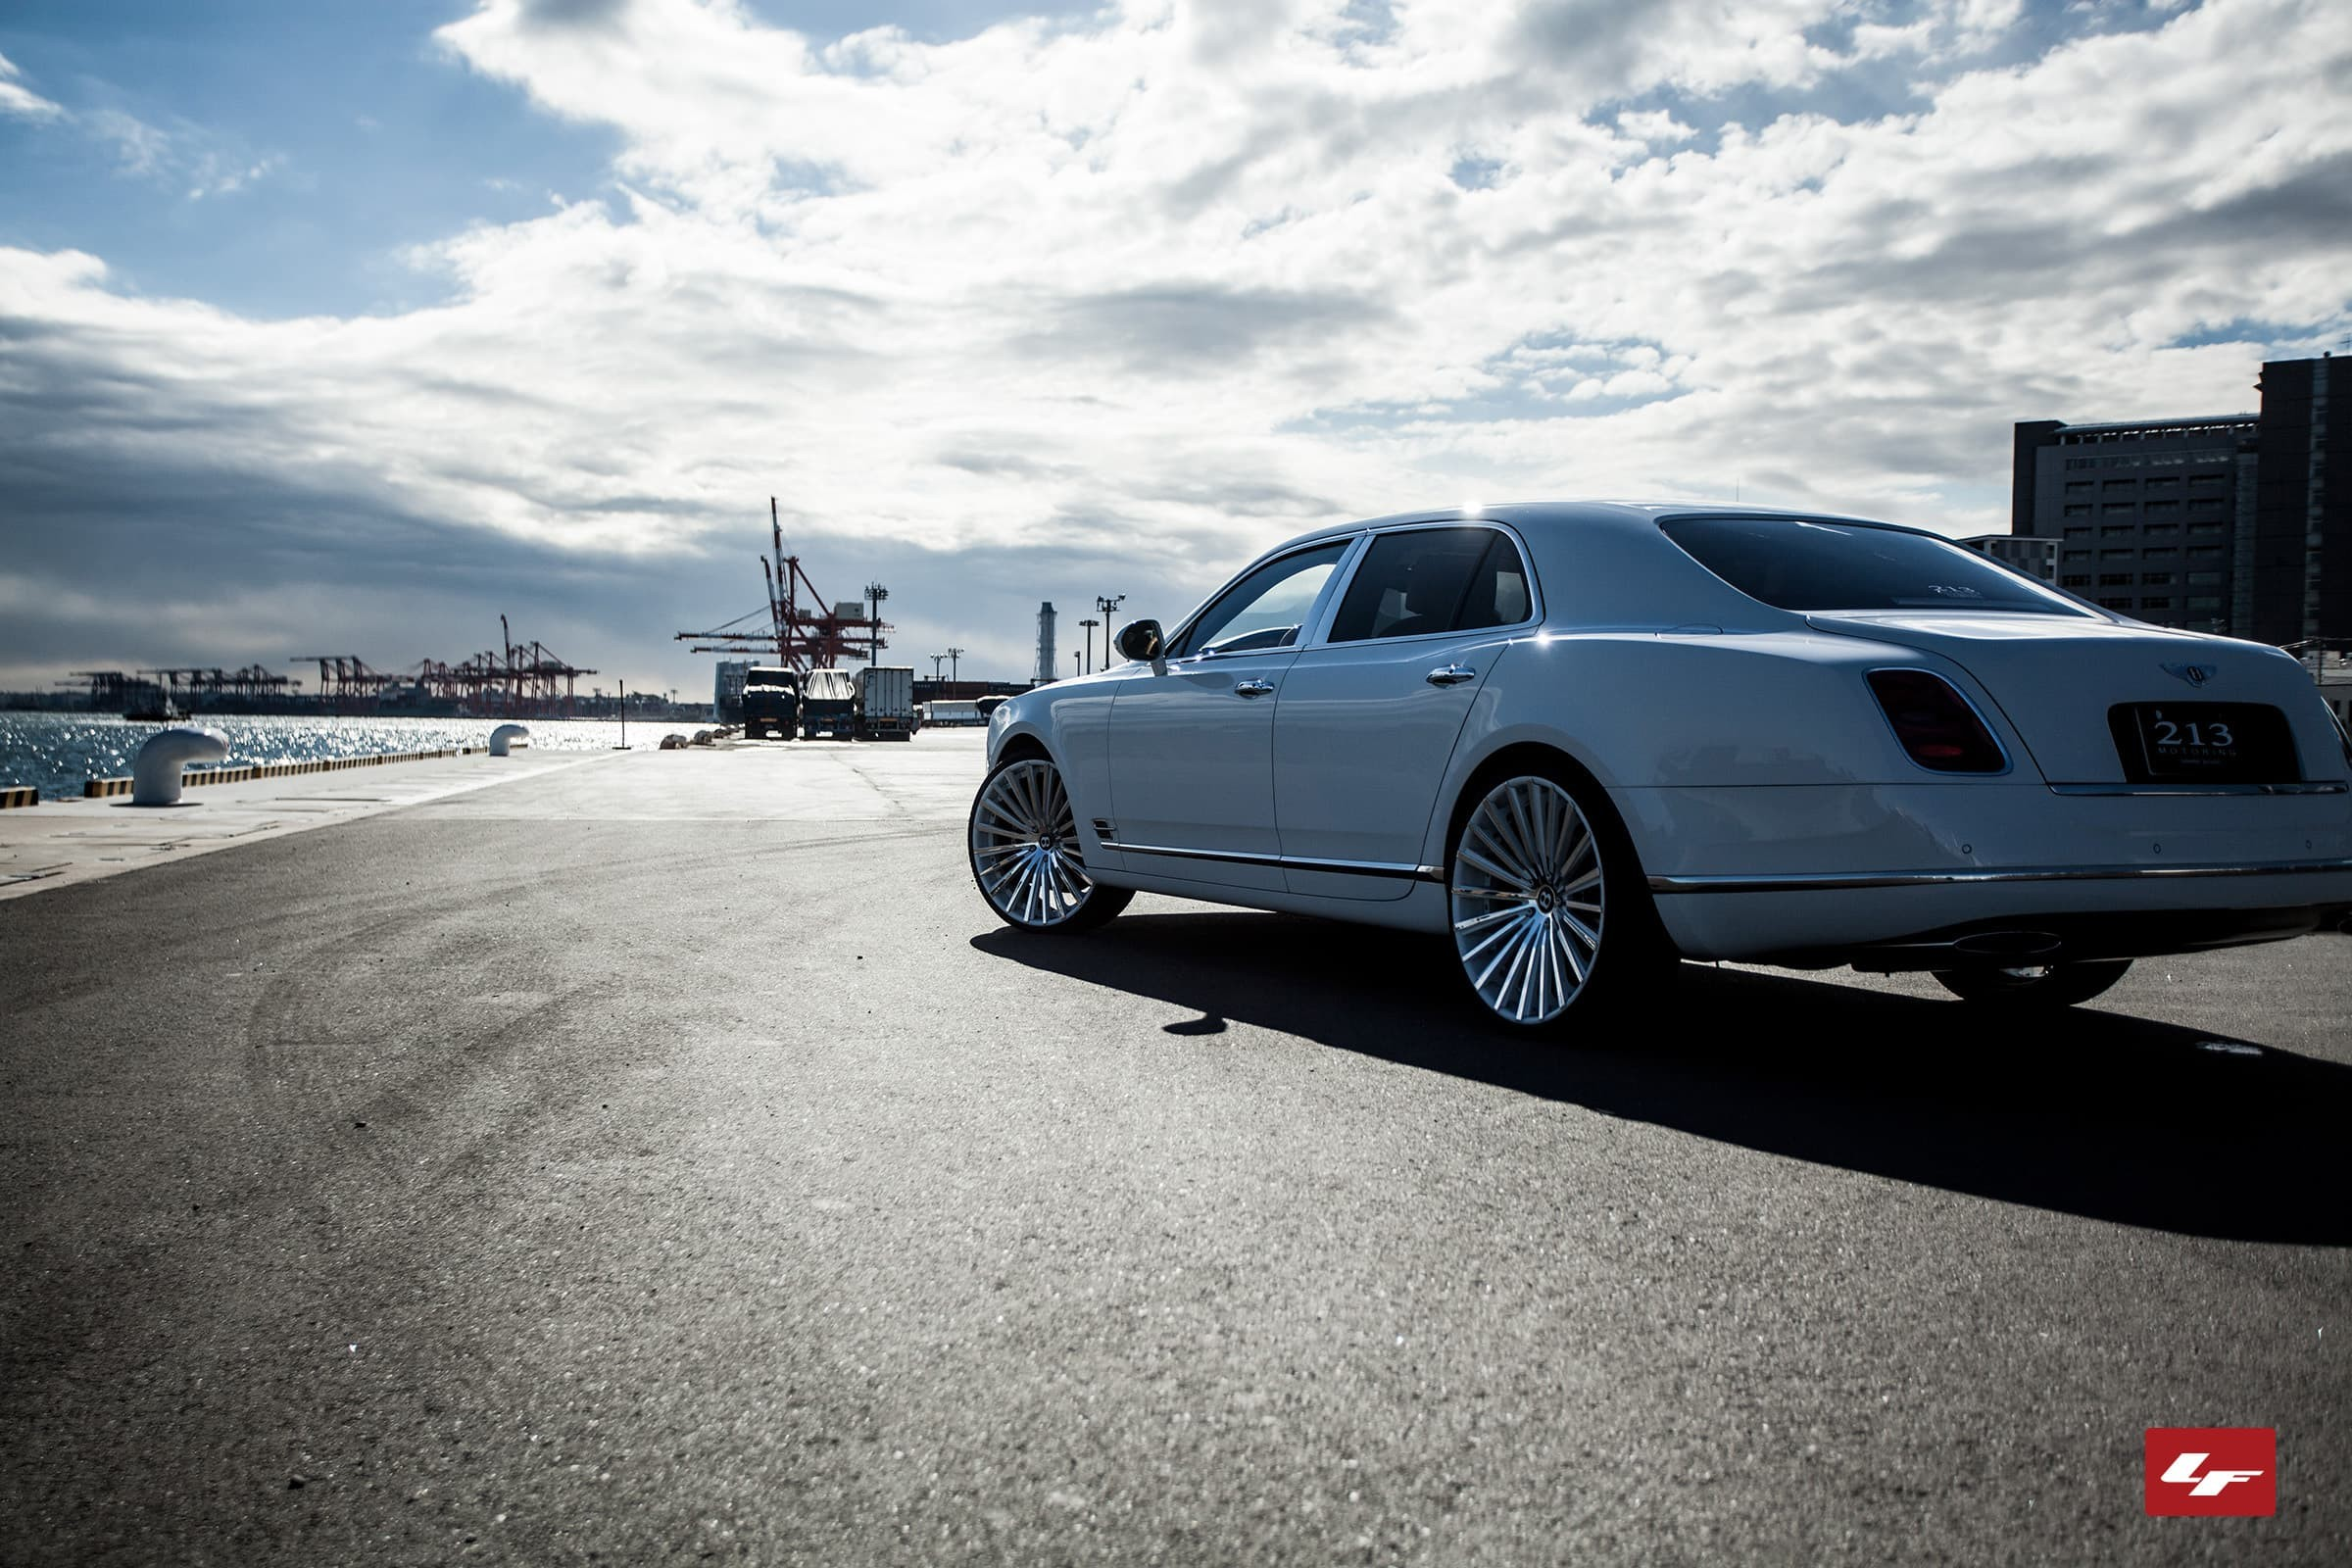 Colr matching LZ-722 on the 2013 Bentley Mulsanne